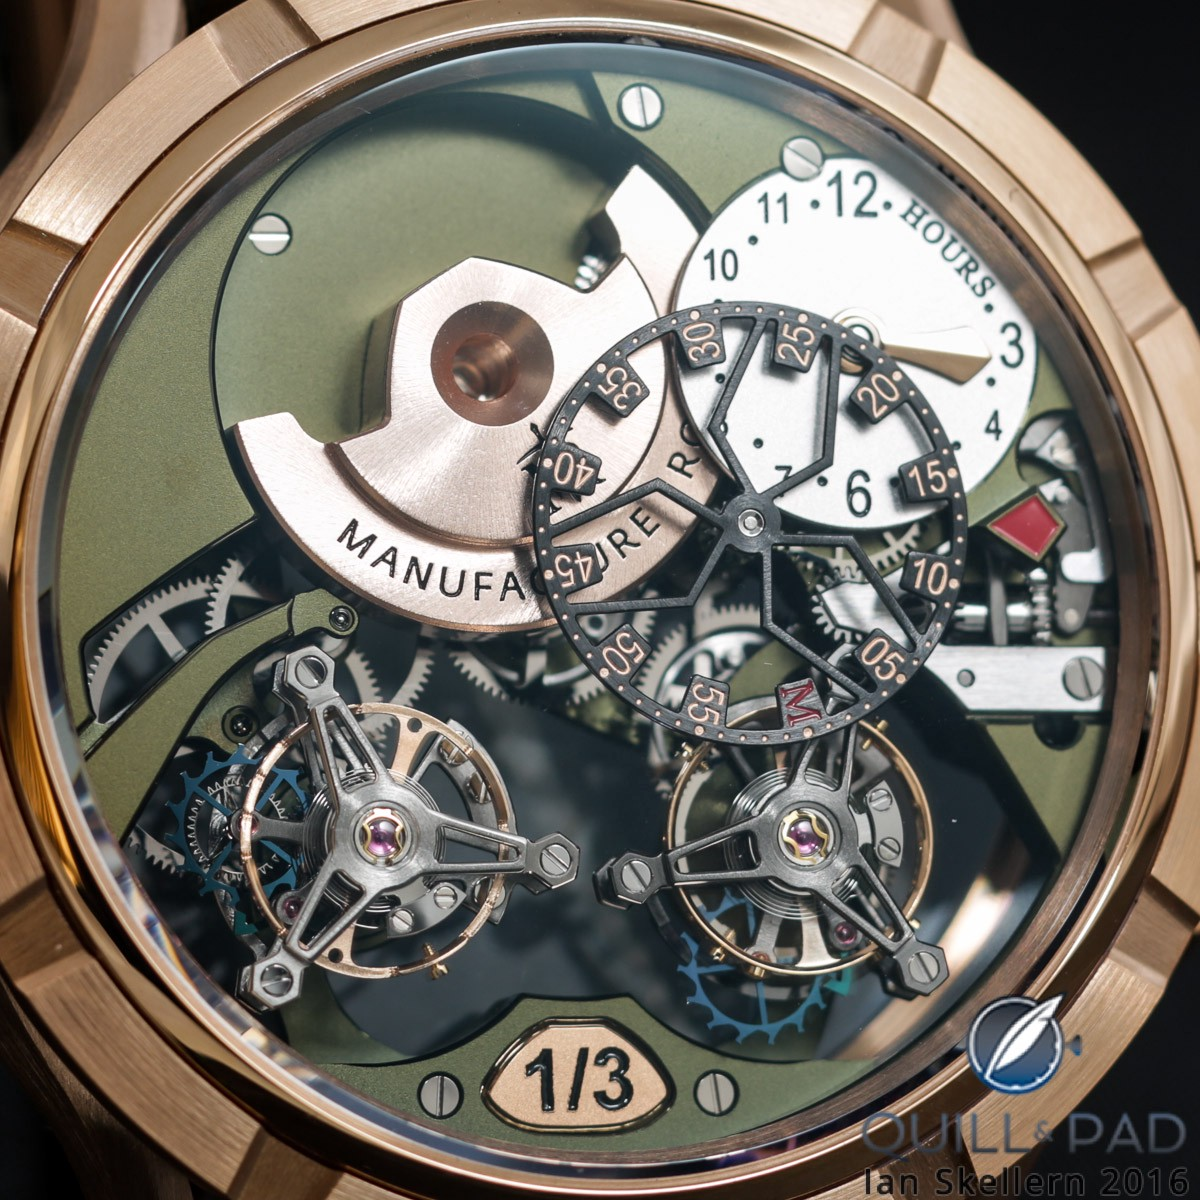 Manufacture Royale 1770 Micromégas Revolution in red gold with olive green movement